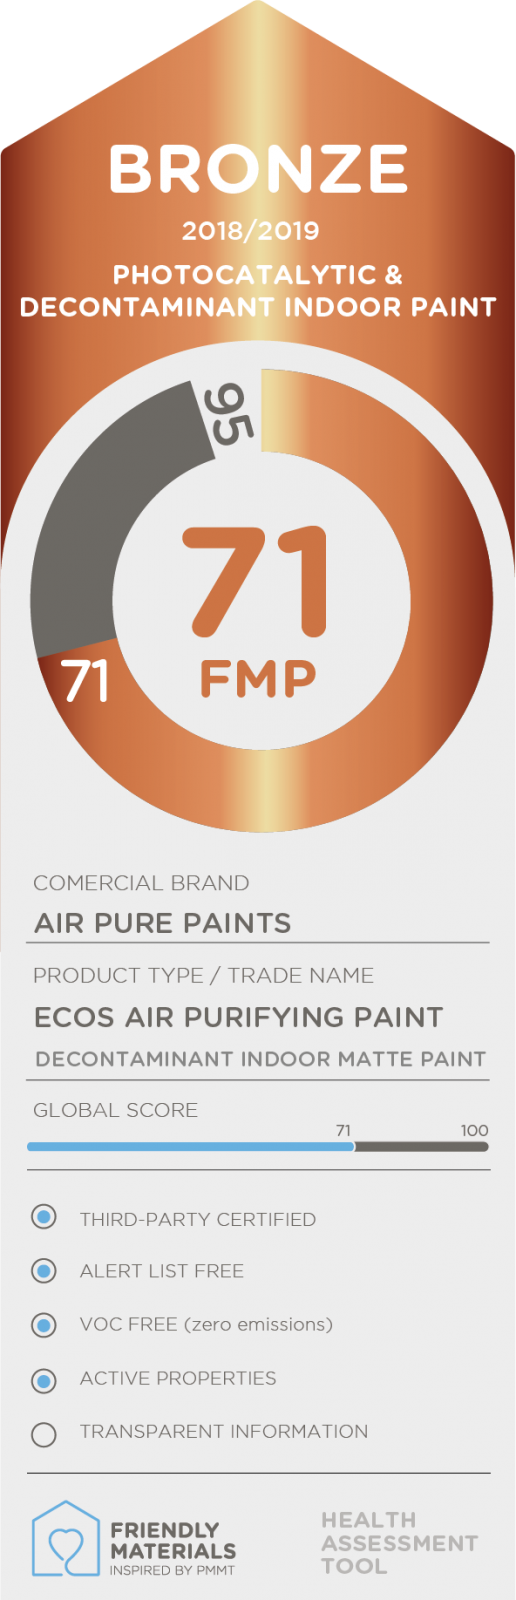 Ecos Air Purifying Paint bronze 71